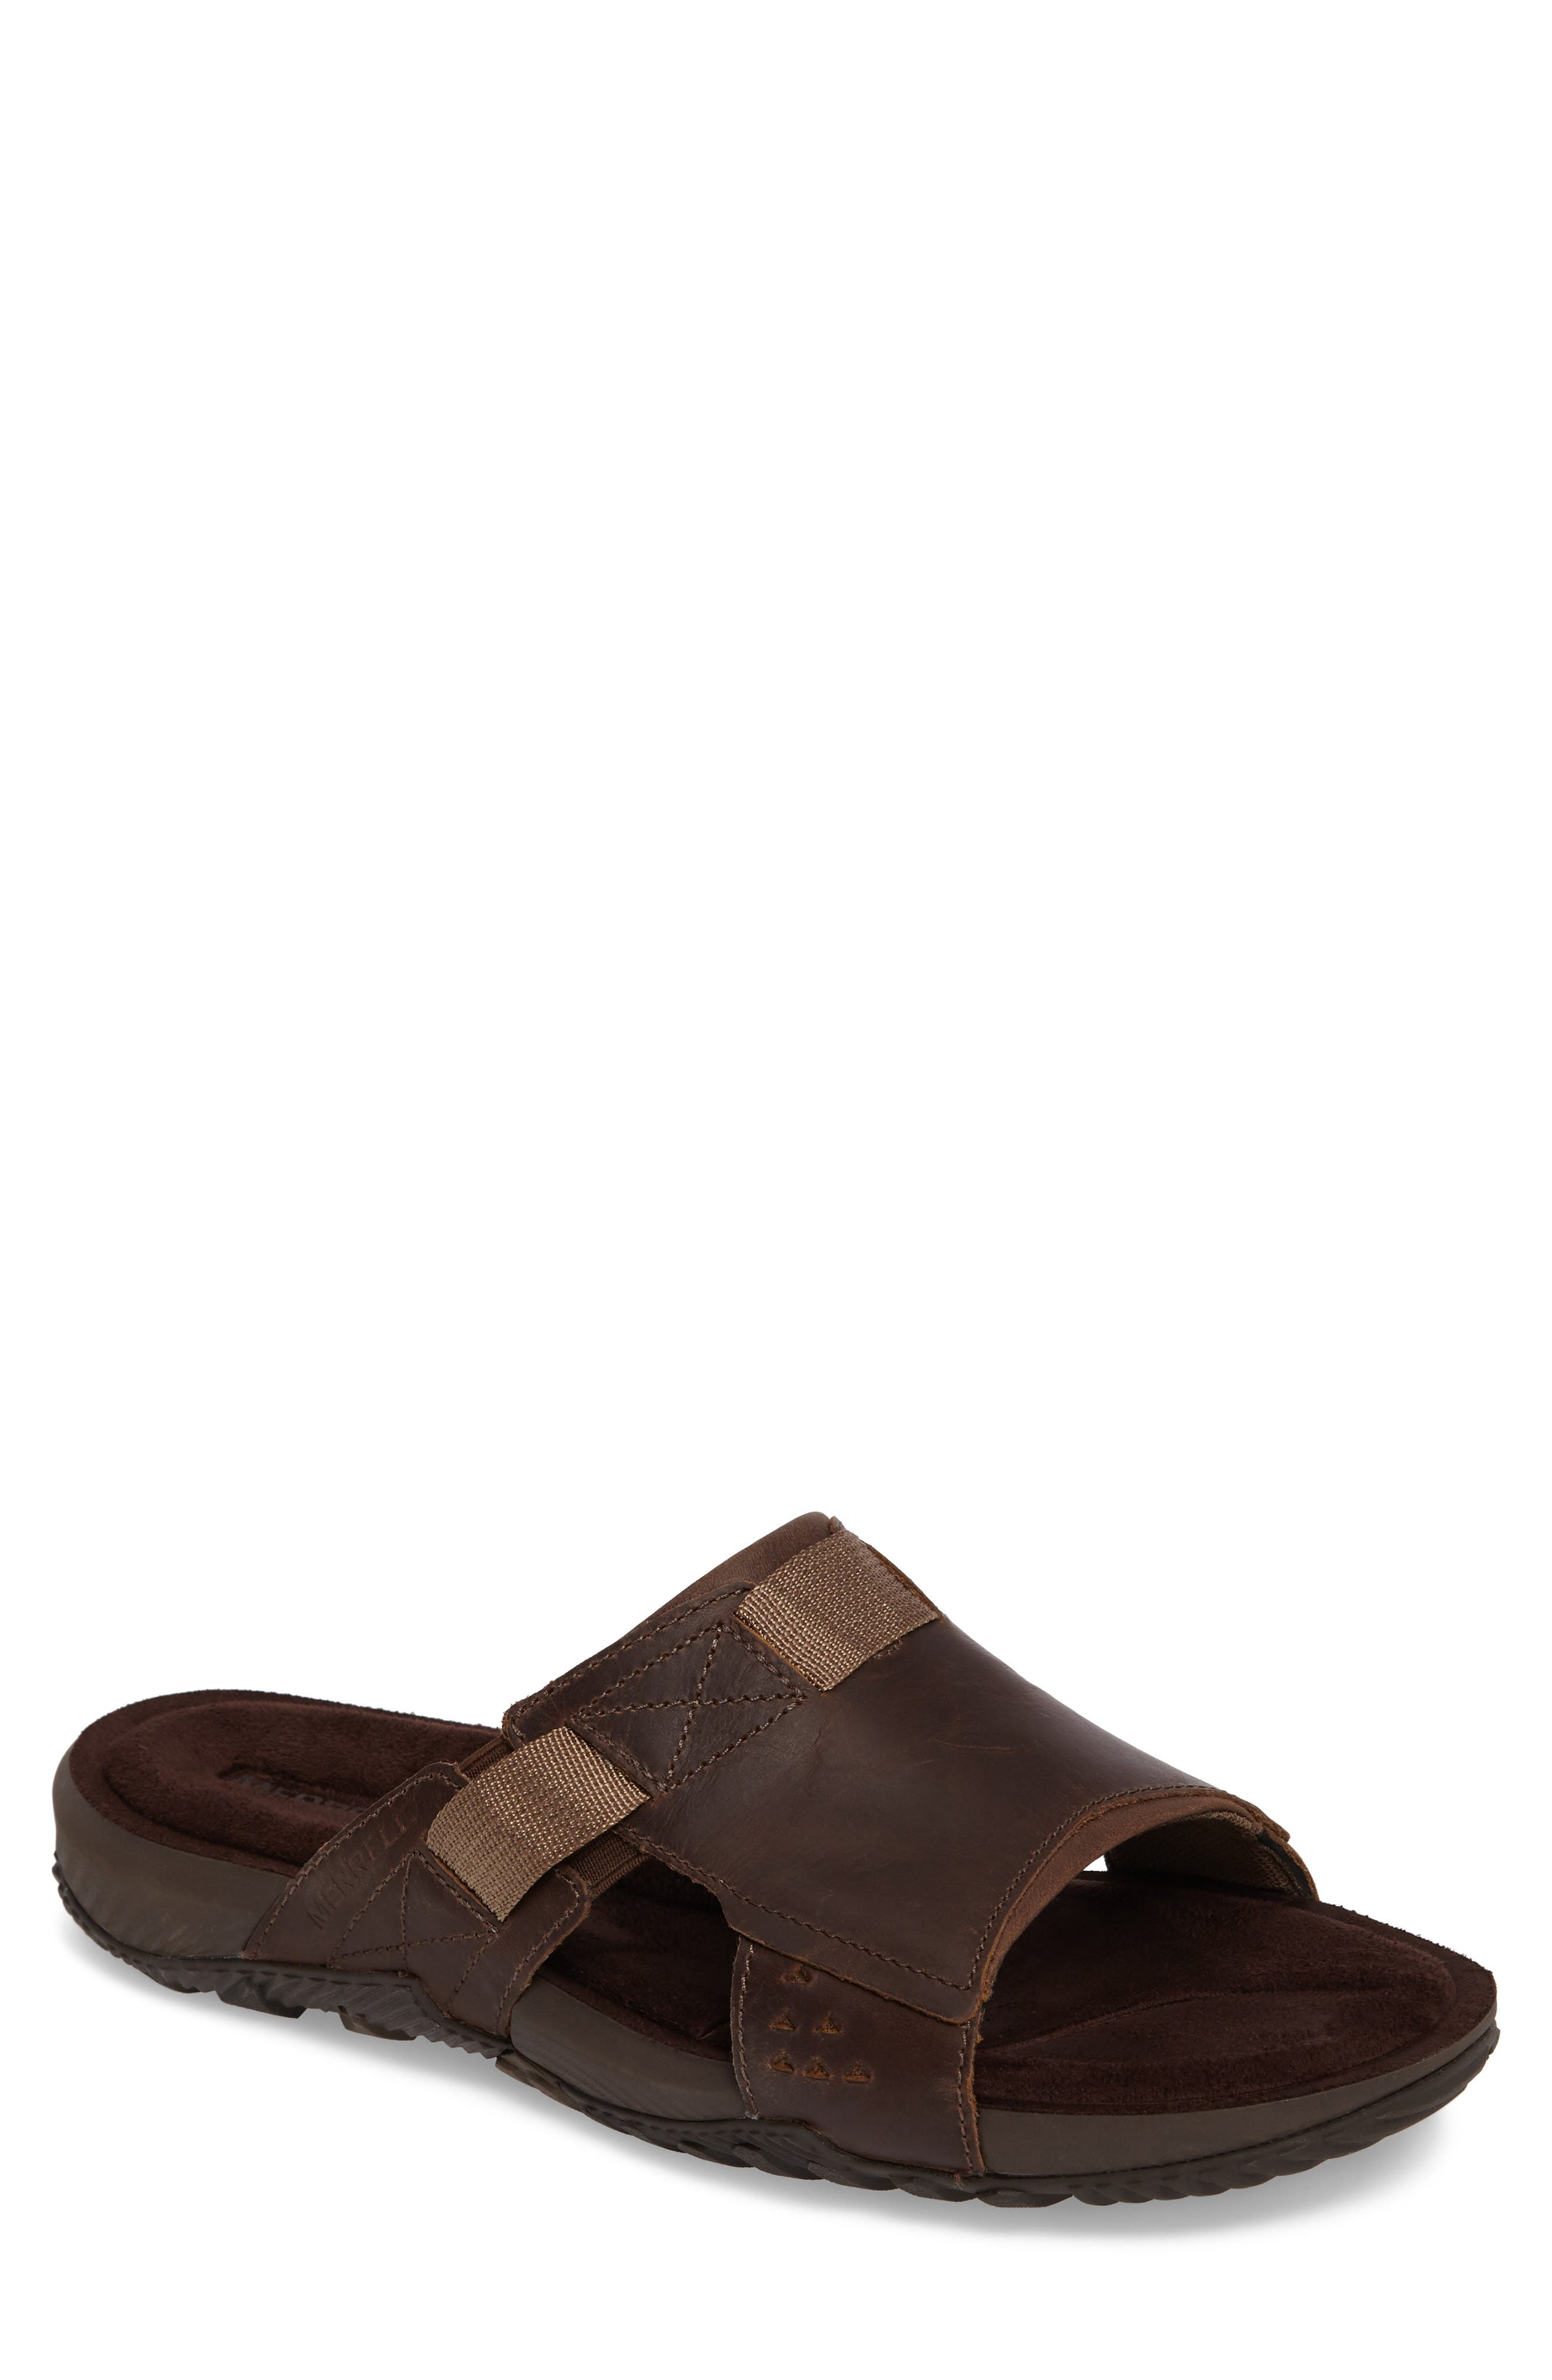 Terrant Slide Sandal,                             Main thumbnail 1, color,                             Dark Earth